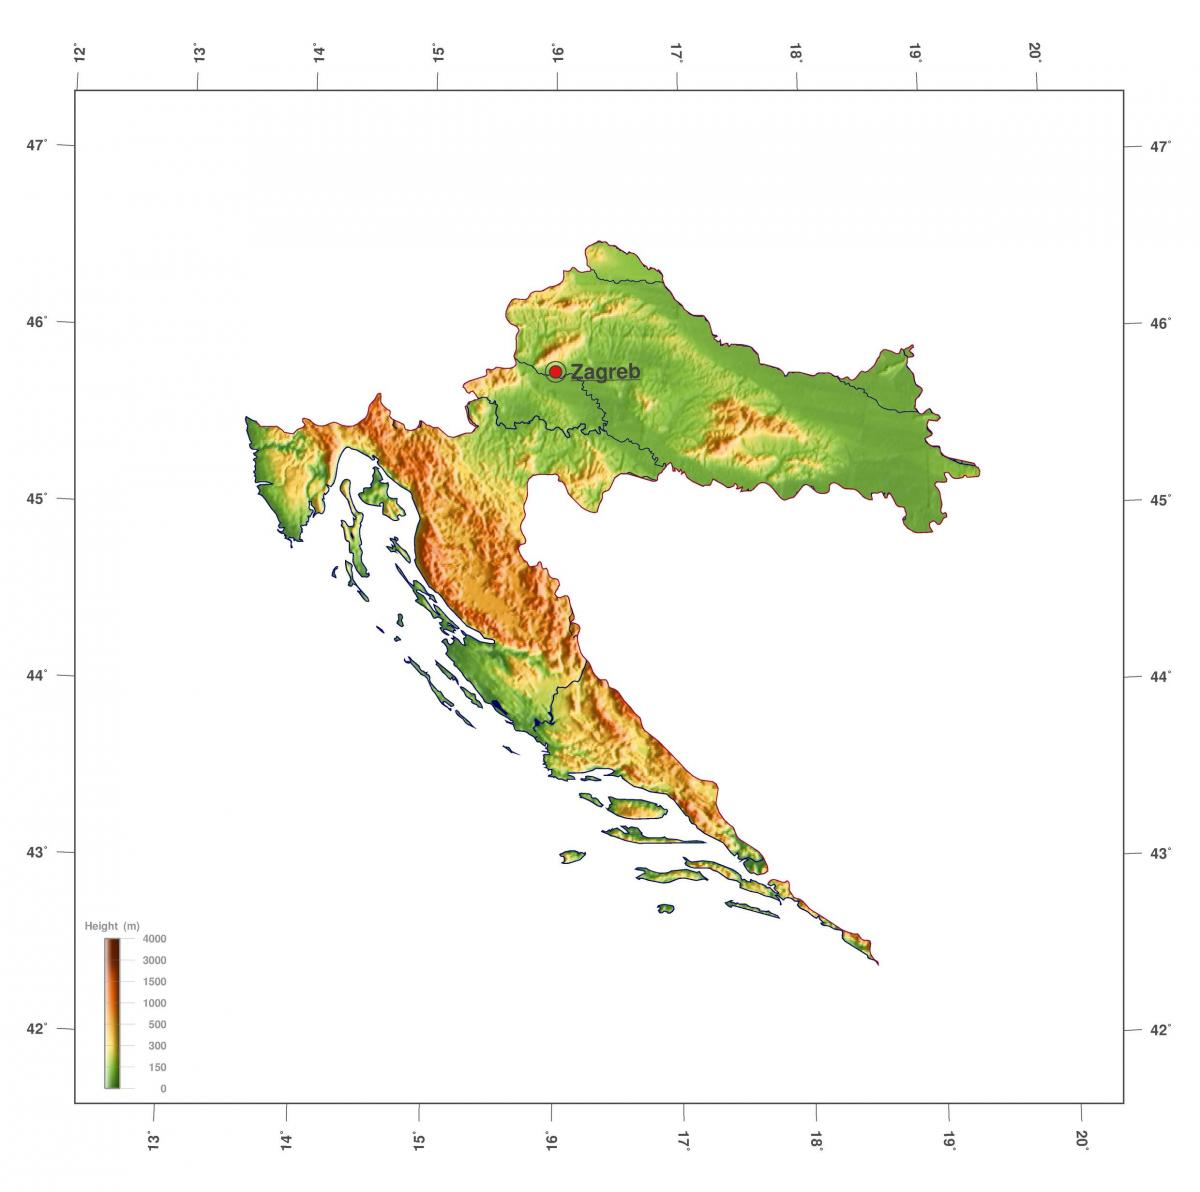 Croatia altitude map